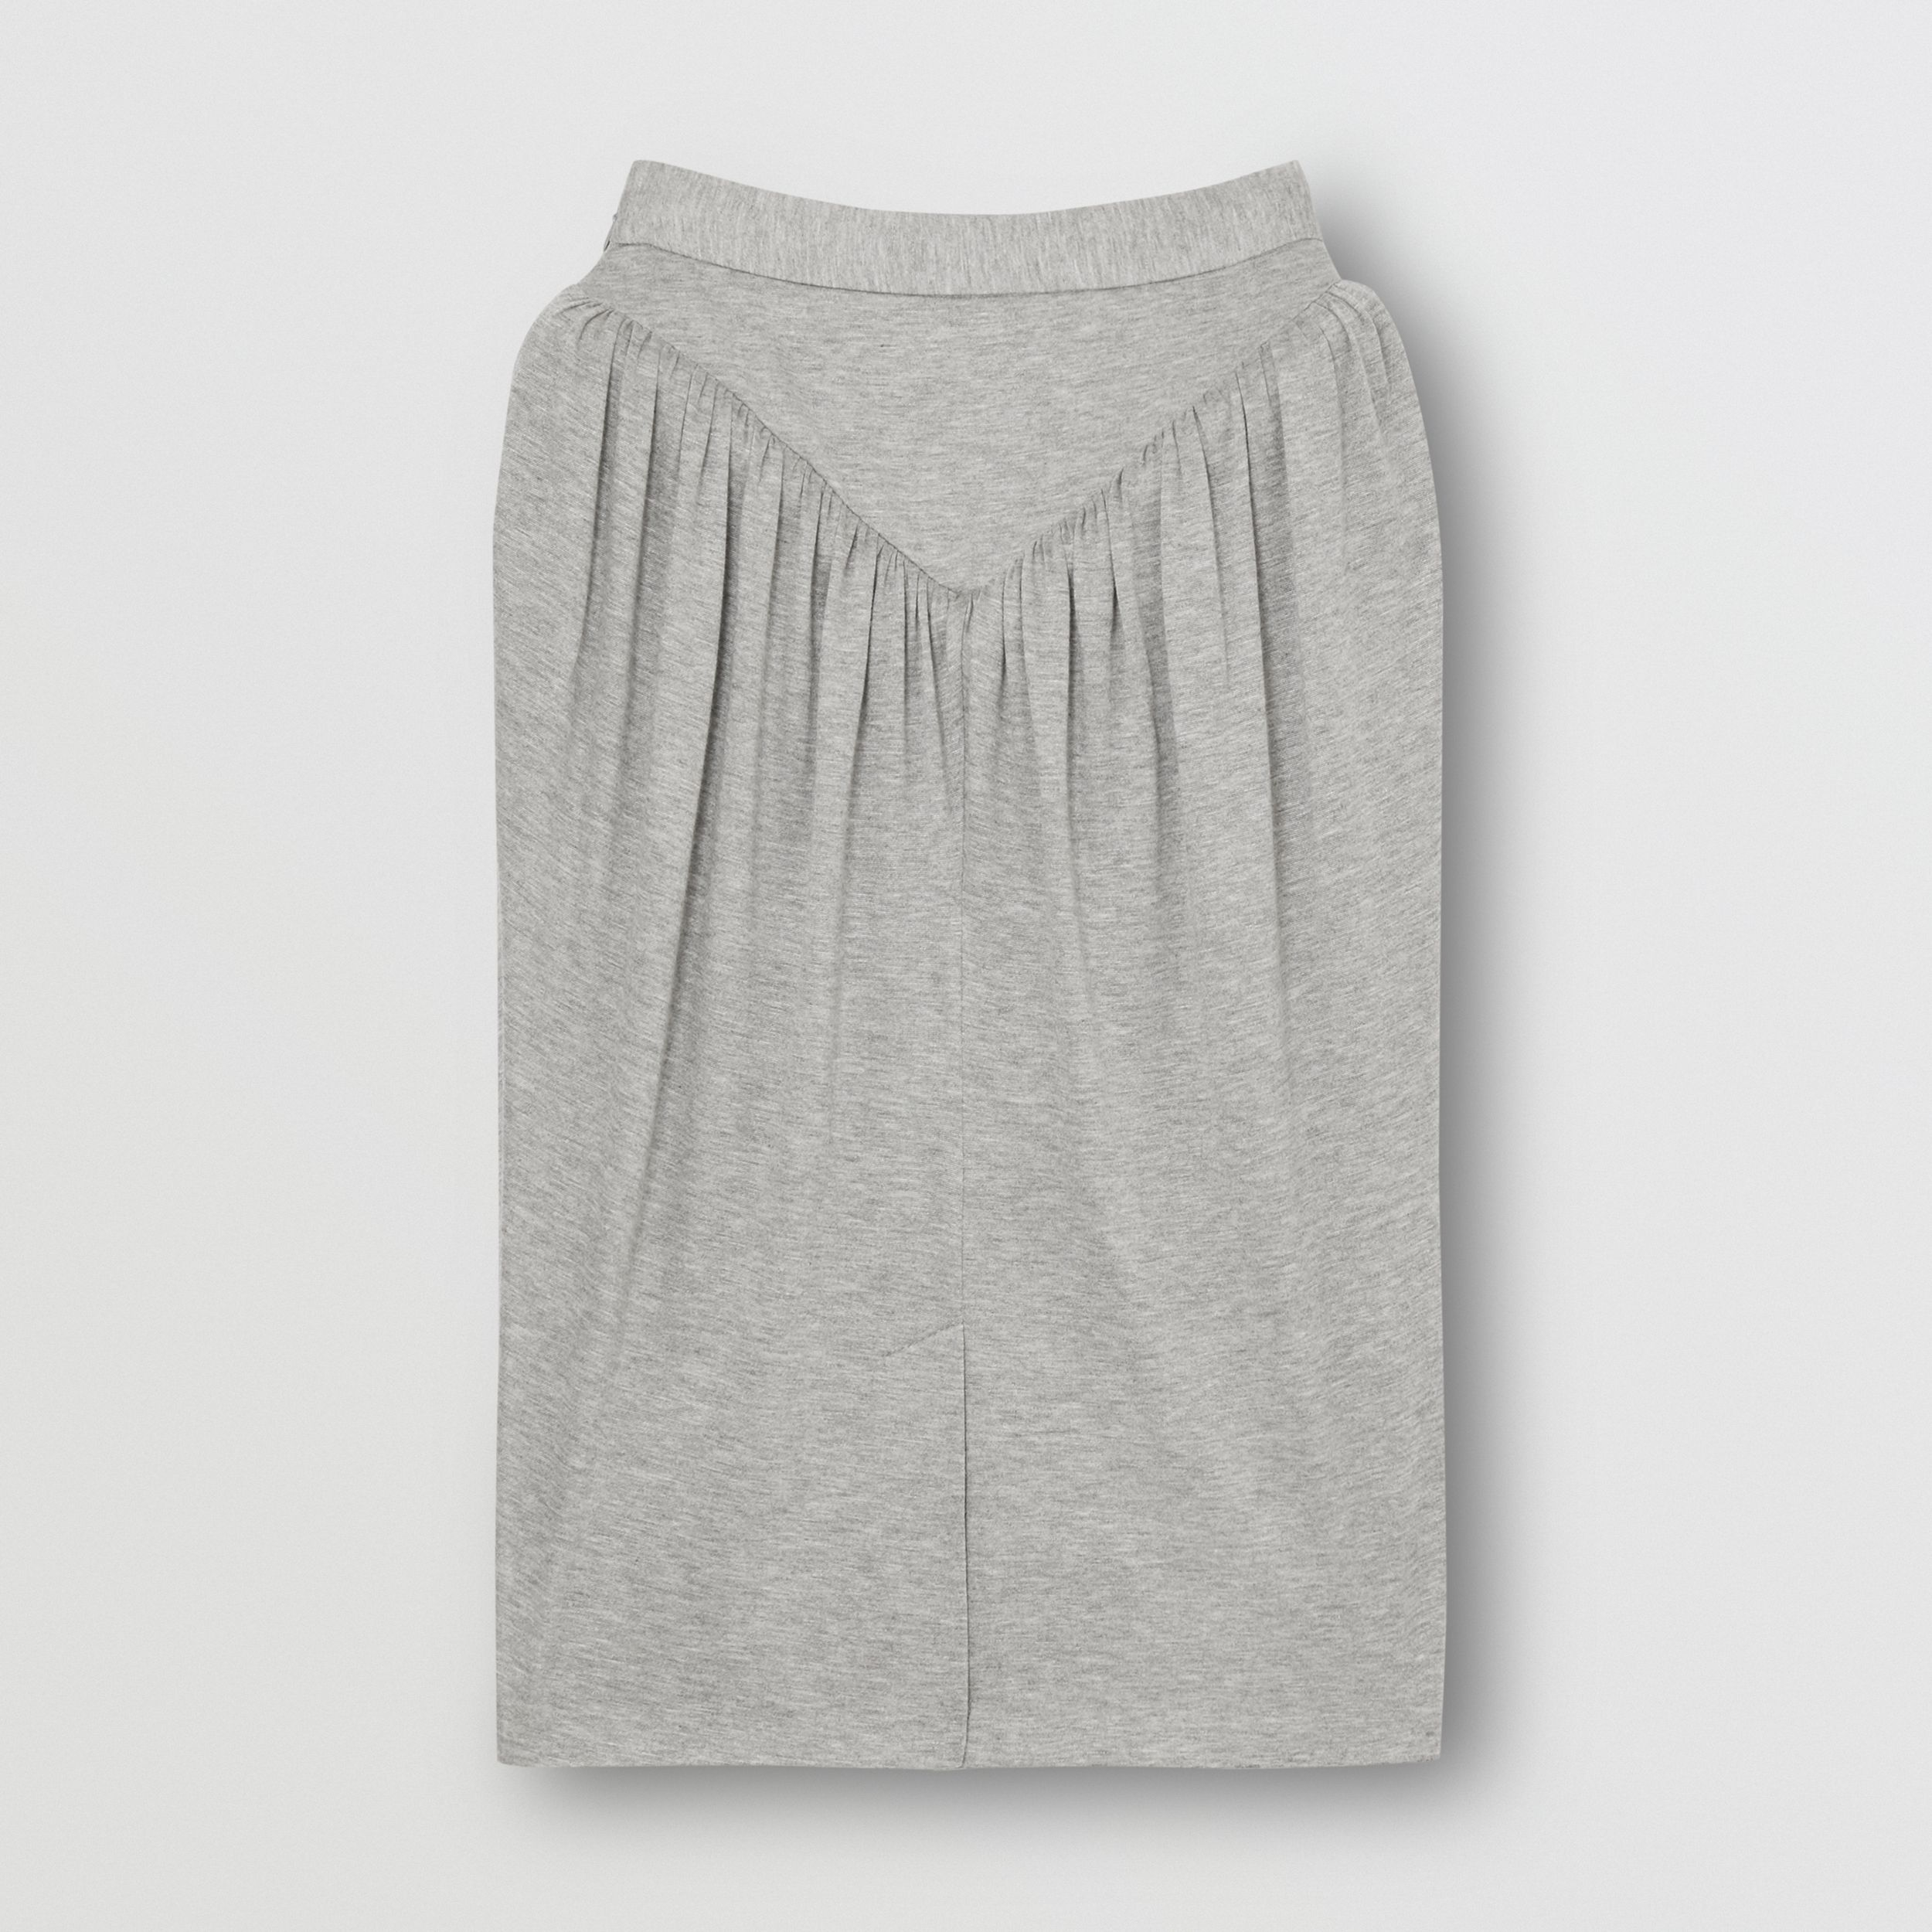 Gathered Jersey Sculptural Skirt in Pewter Melange - Women | Burberry - 4